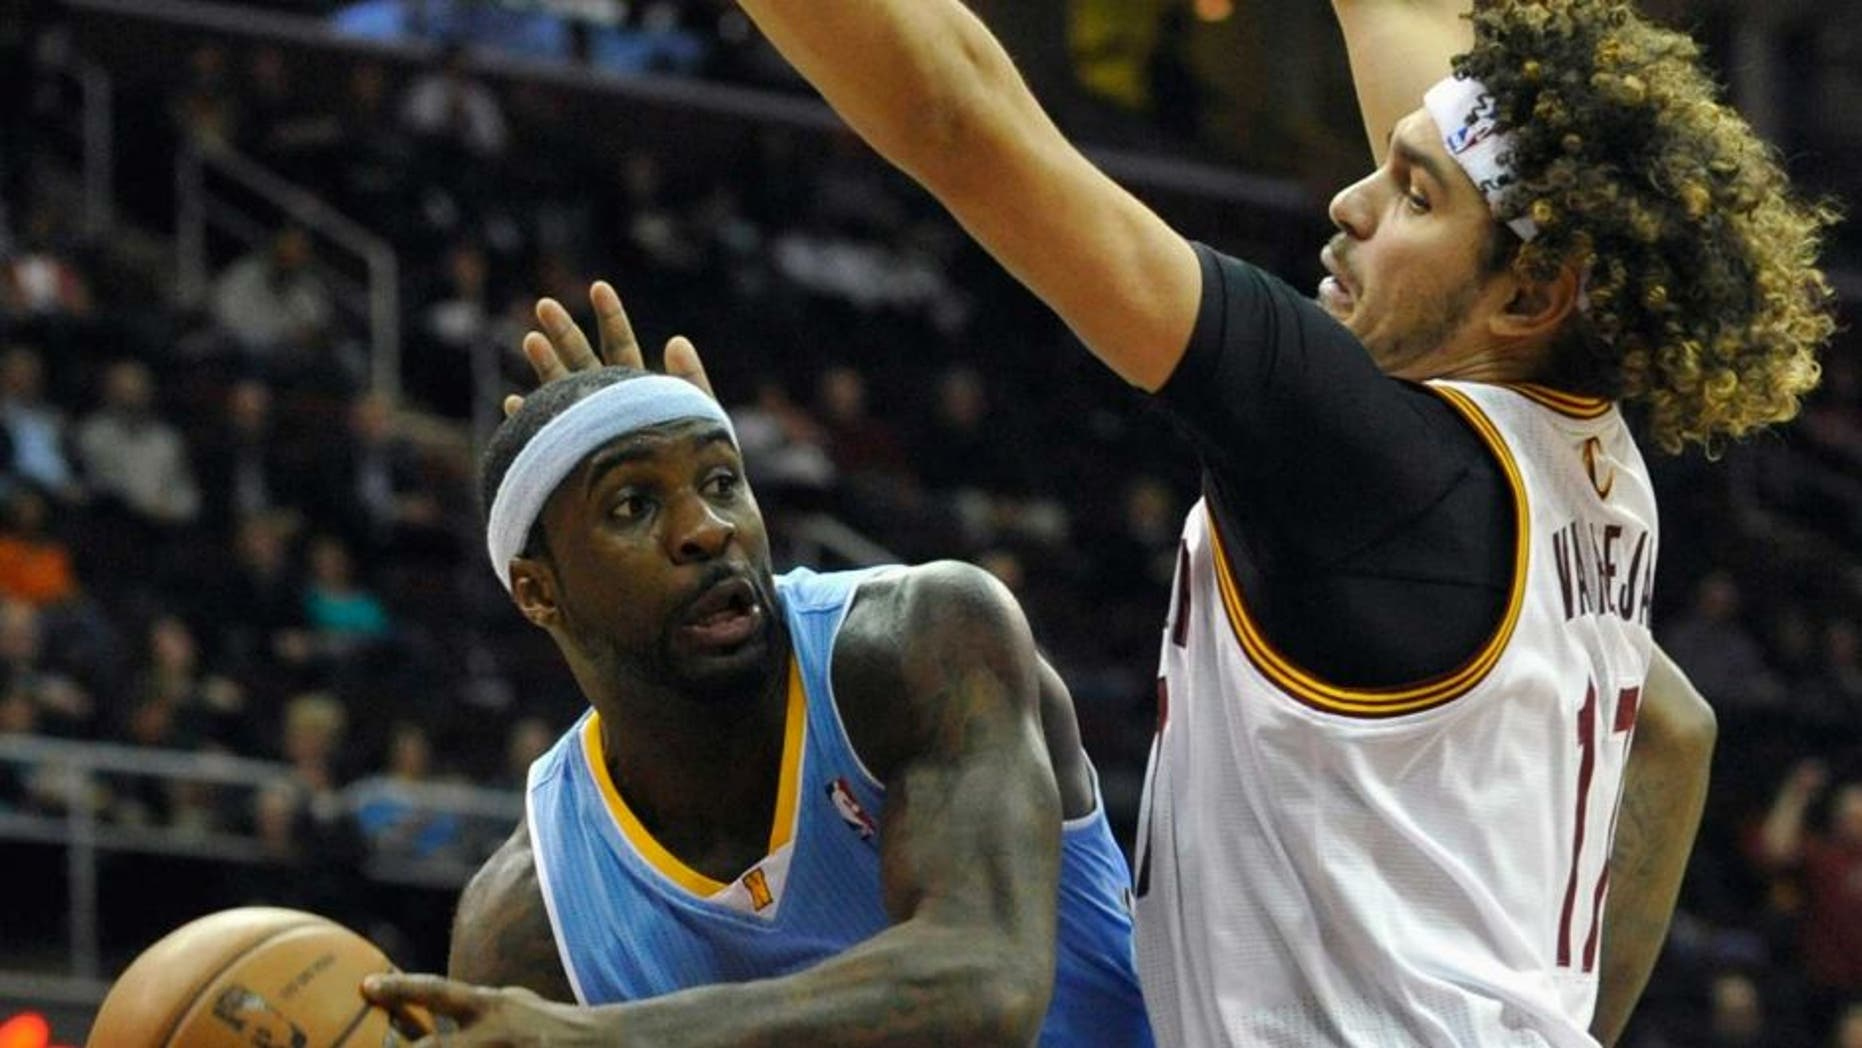 Dec 4, 2013; Cleveland, OH, USA; Denver Nuggets point guard Ty Lawson (3) drives against Cleveland Cavaliers center Anderson Varejao (17) in the first quarter at Quicken Loans Arena. Mandatory Credit: David Richard-USA TODAY Sports